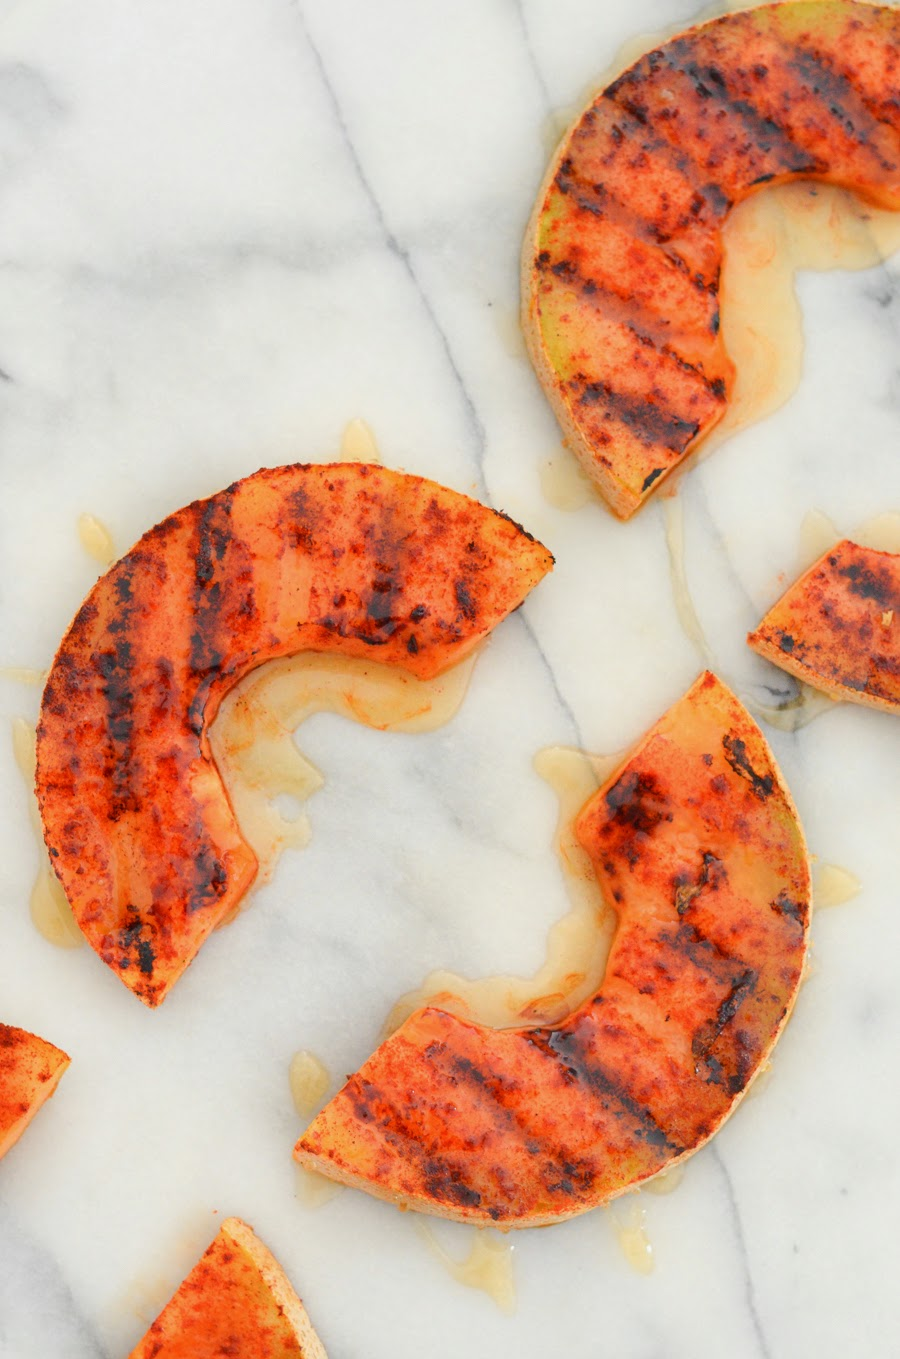 Sweet + Spicy Grilled Cantaloupe with smoked paprika & honey via @lucismorsels